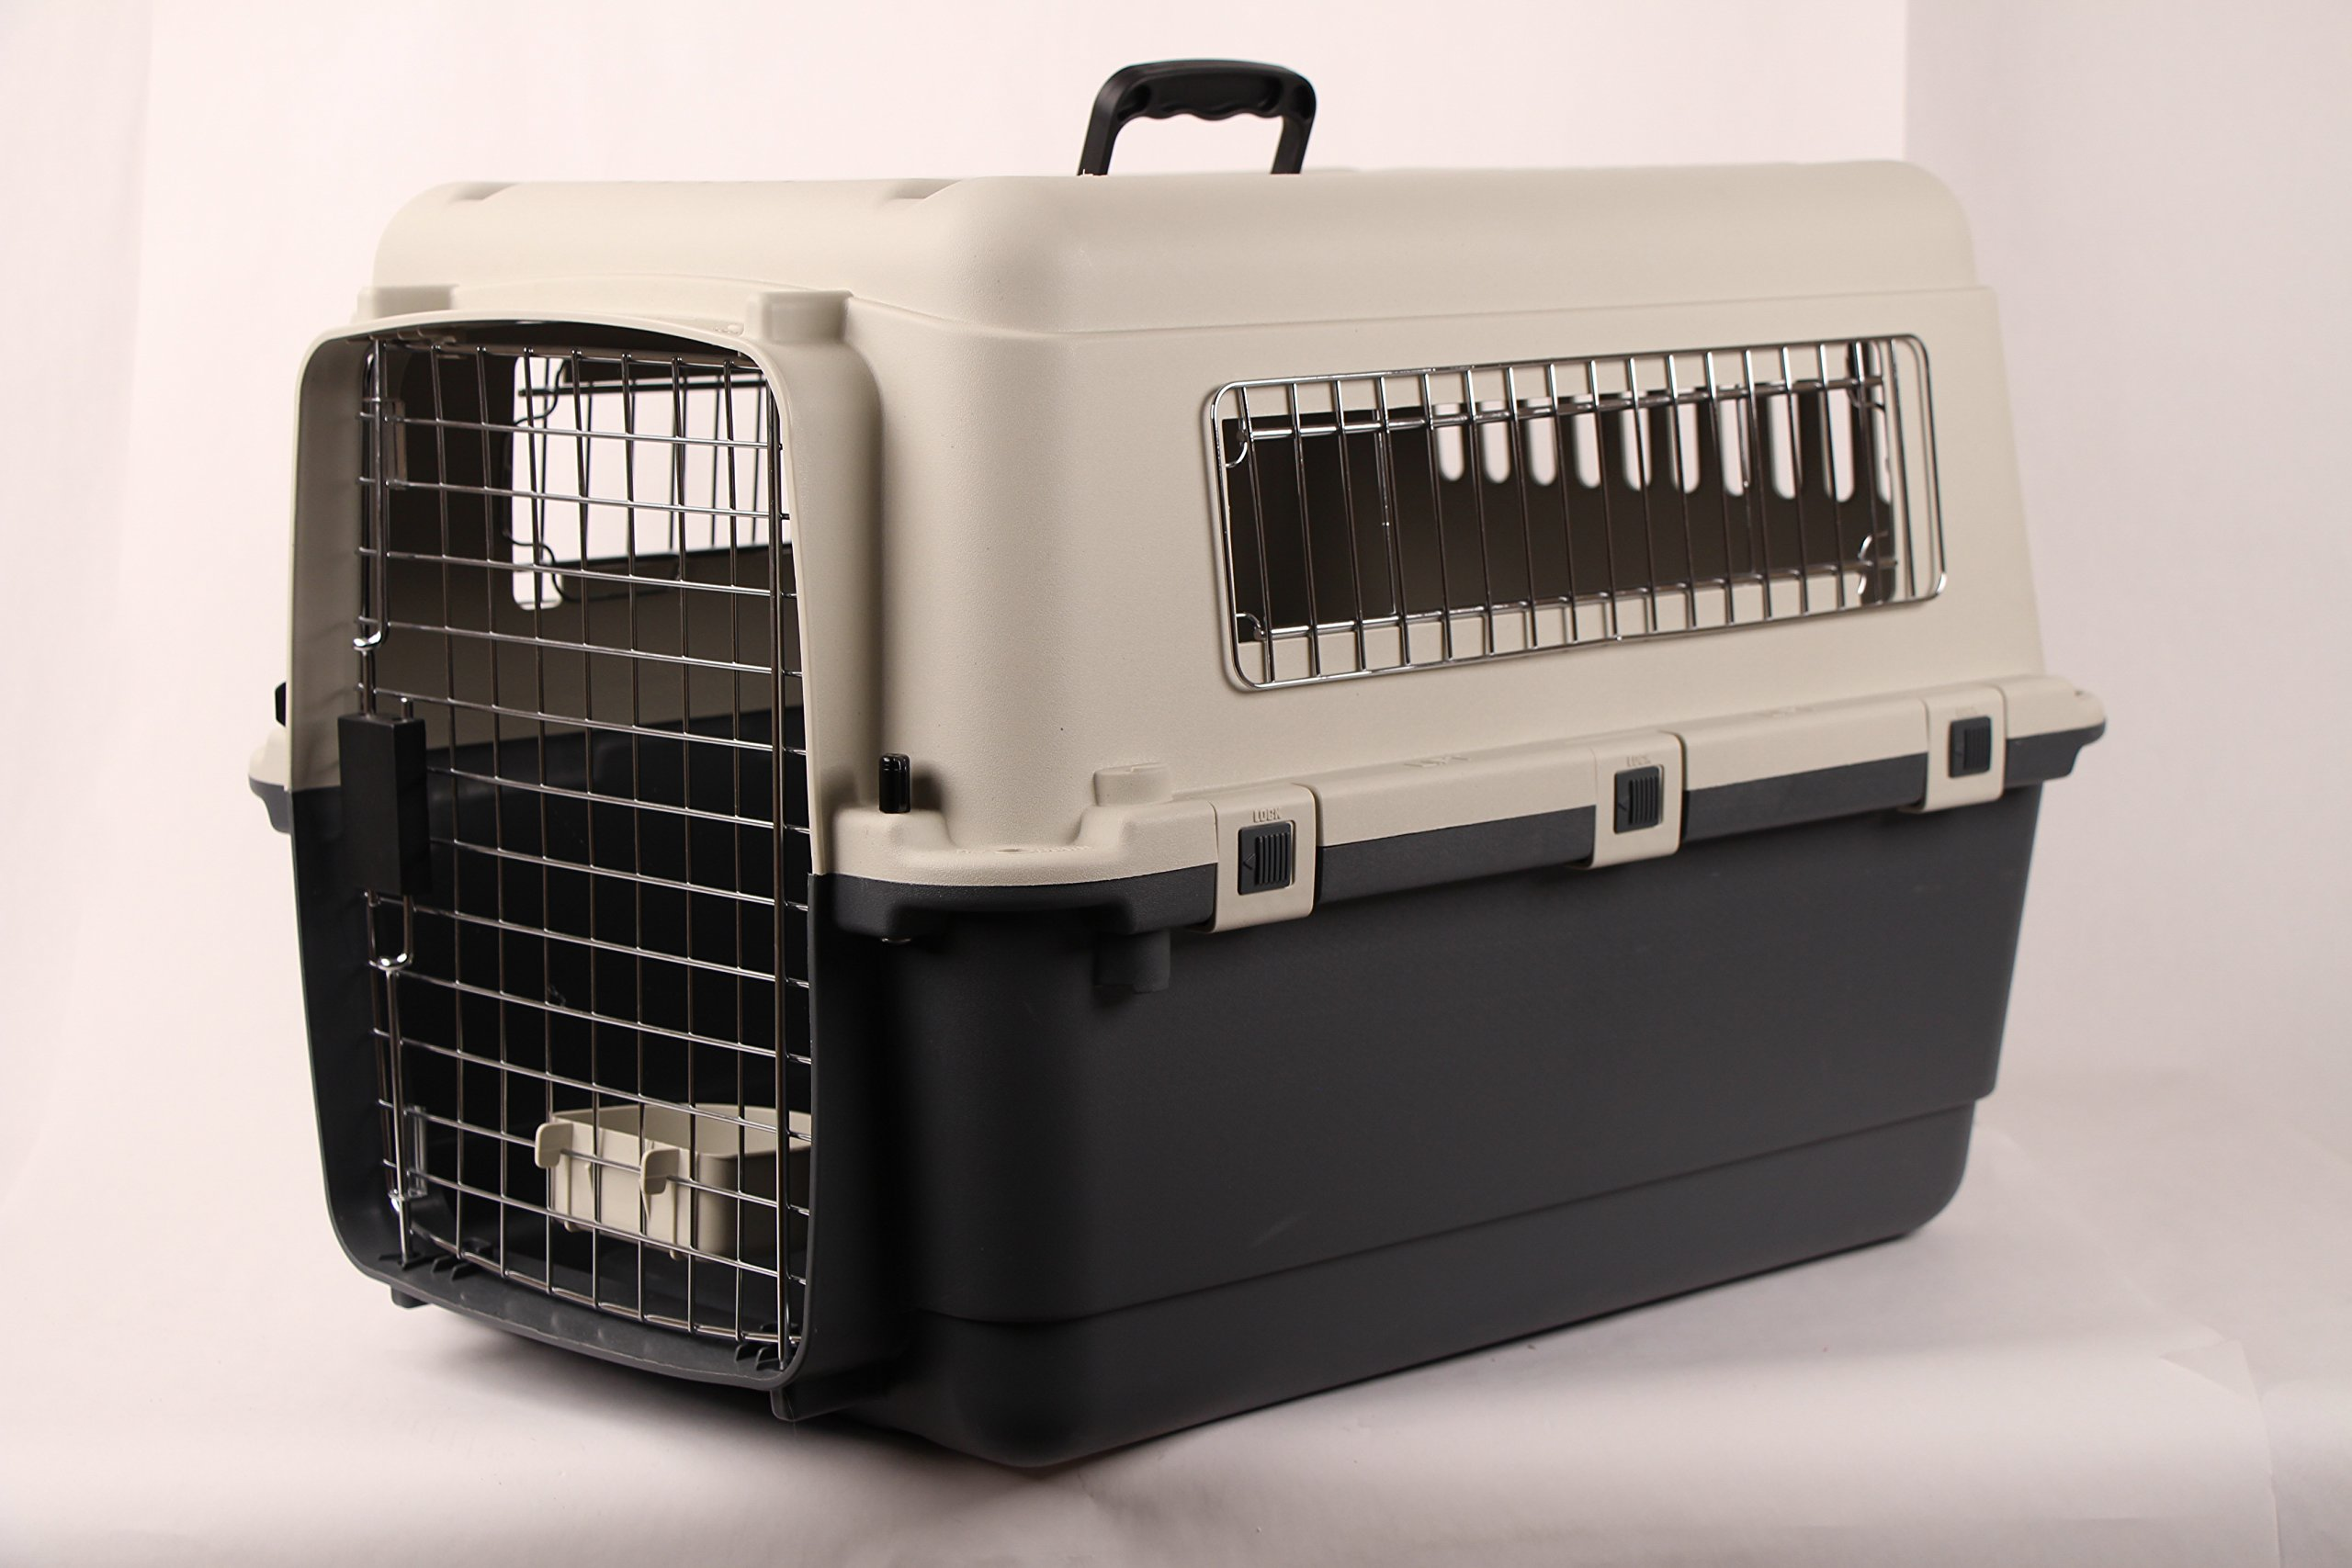 Pet Kennel Direct 27'' Airline Approved Plastic Dog / Cat Pet Kennel Carrier or Air Travel with Chrome Door and Free Cup Foldable Dog Travel Crate